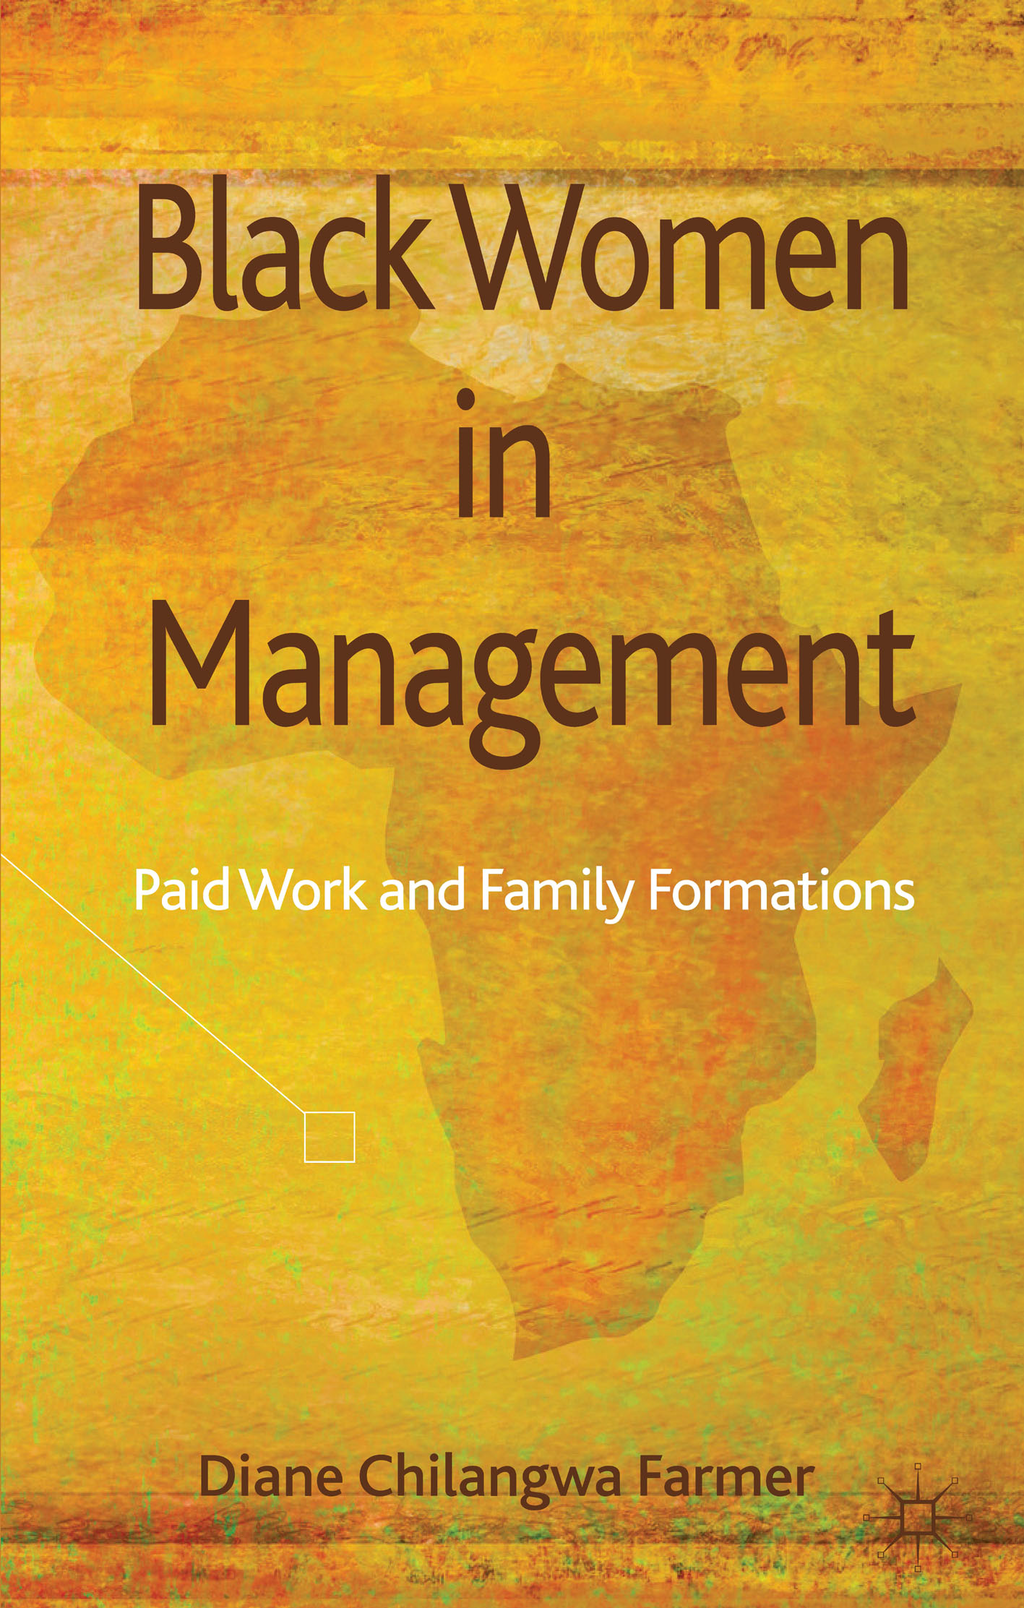 Black Women in Management Paid Work and Family Formations